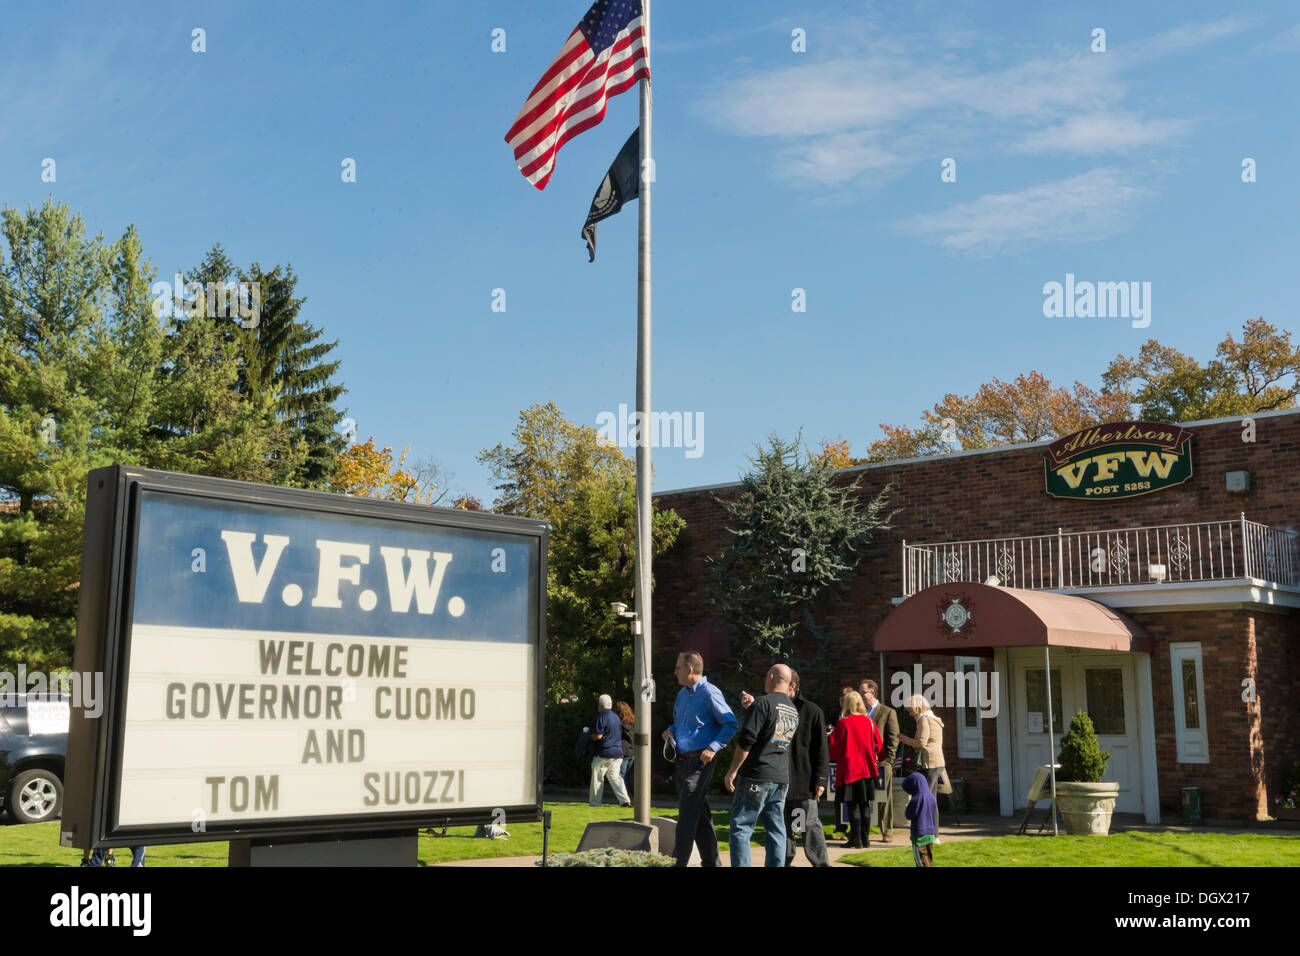 Albertson, New York, U.S. 26th October 2013. New York Governor Cuomo endorses Suozzi for Nassau County Executive at the Albertson Veterans of Foreign Wars VFW Post. Democrat Suozzi, the former Nassau County Executive, and Republican encumbant Mangano face each other in a rematch in the upcoming November 5th election. © Ann E Parry/Alamy Live News - Stock Image